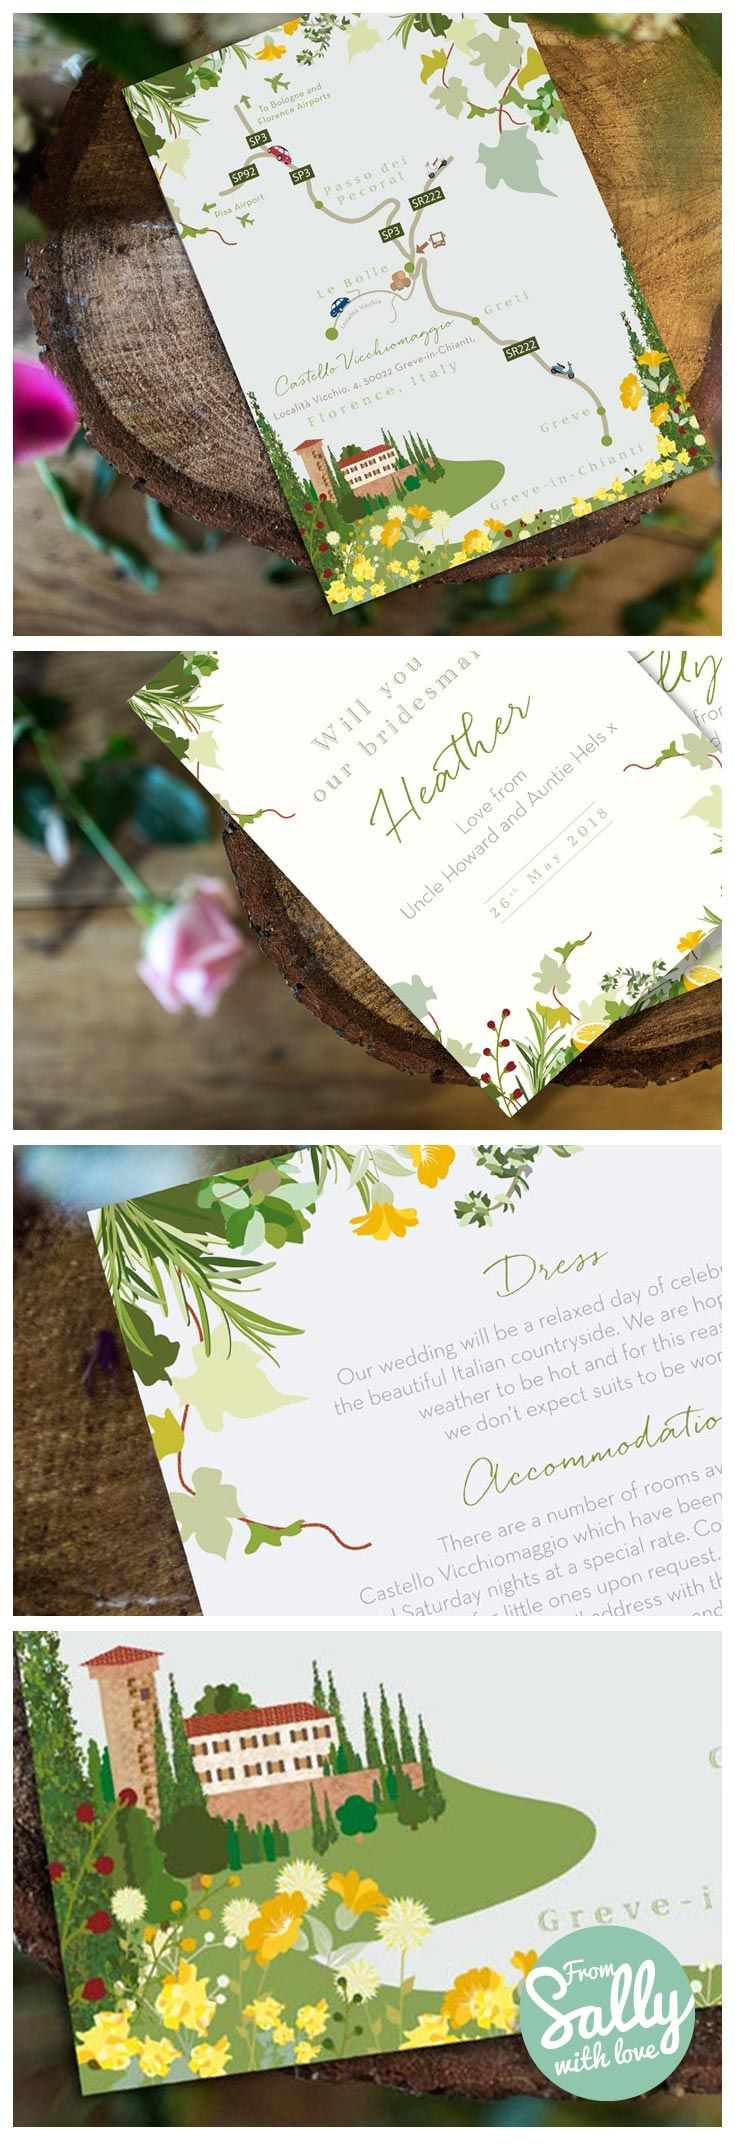 When you have a gorgeous venue, you want to show everyone, and that's exactly what we did for this wedding invitation. Helen and Howard are getting married in beautiful Italy, in a stunning castle, amongst Cyprus trees and vineyards.   #wedding #weddinginvitations #weddinginvites #weddingideas #weddinginspiration #greenwedding #green #greenery #vineyard #castles #italy #leaves #lemons #map #wildflowers #herbs #directions #designer #professional #weddingexpert #illustration